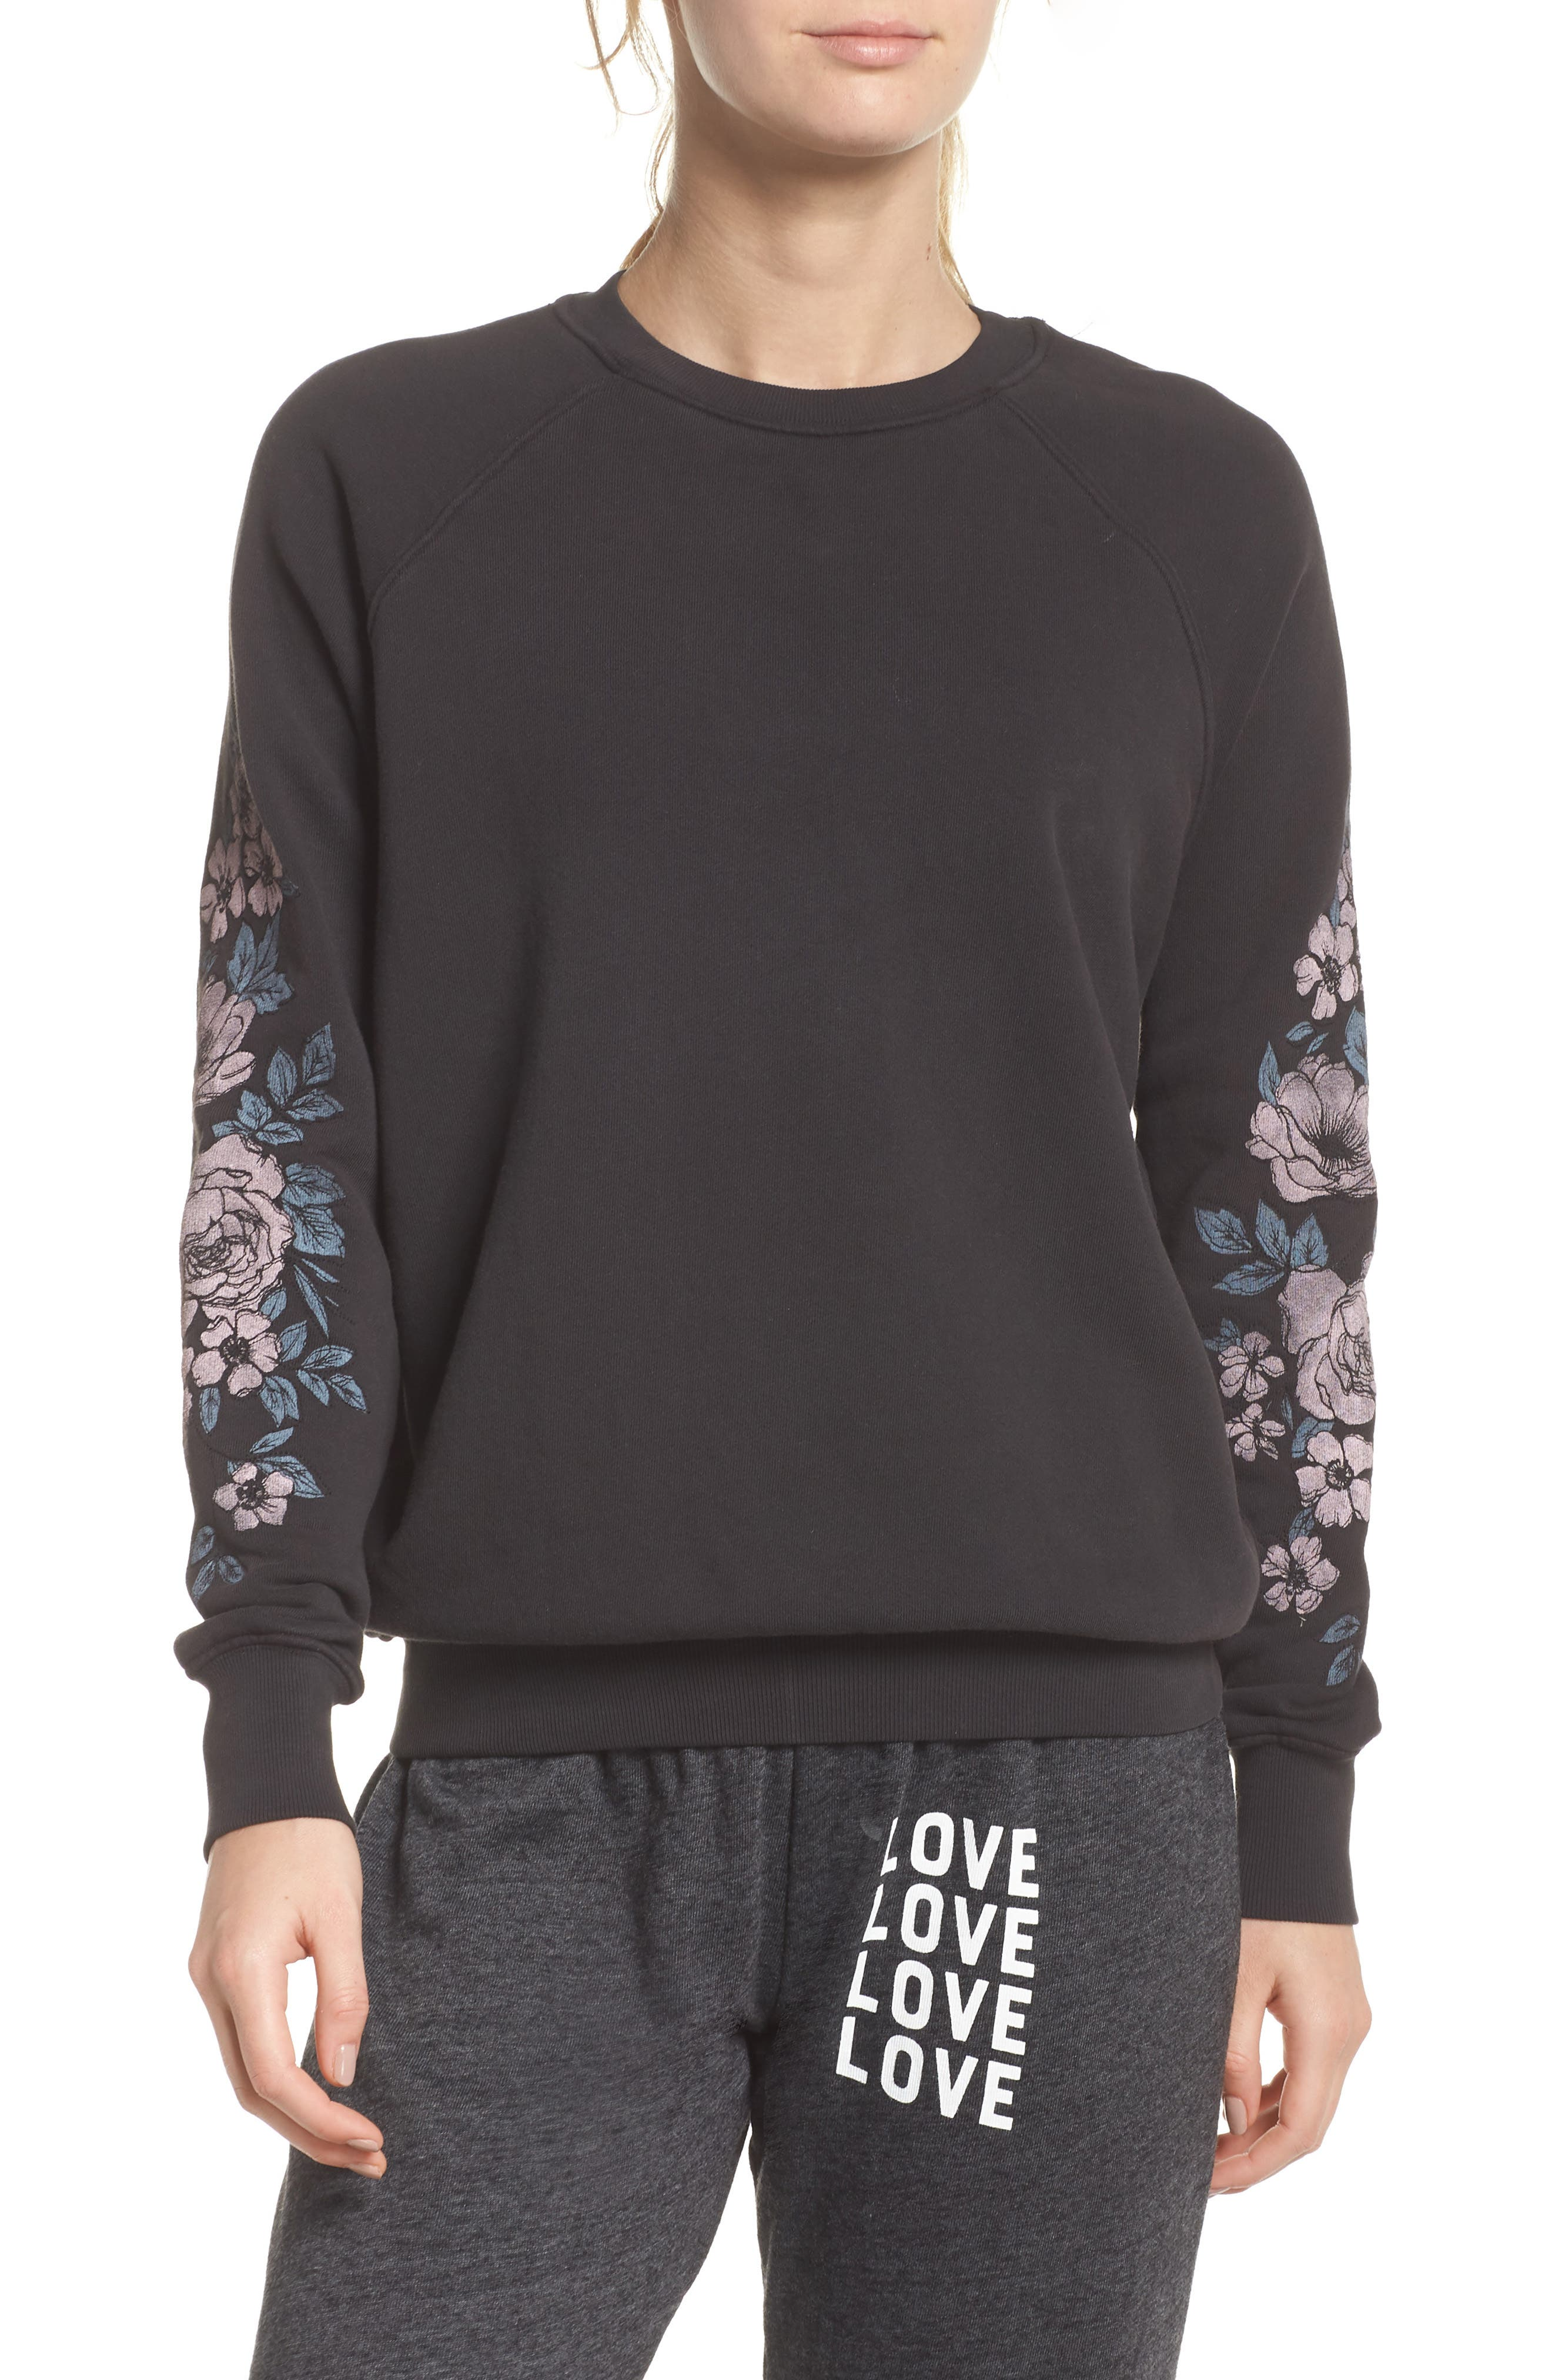 Give Love Sweatshirt,                         Main,                         color, VINTAGE BLACK